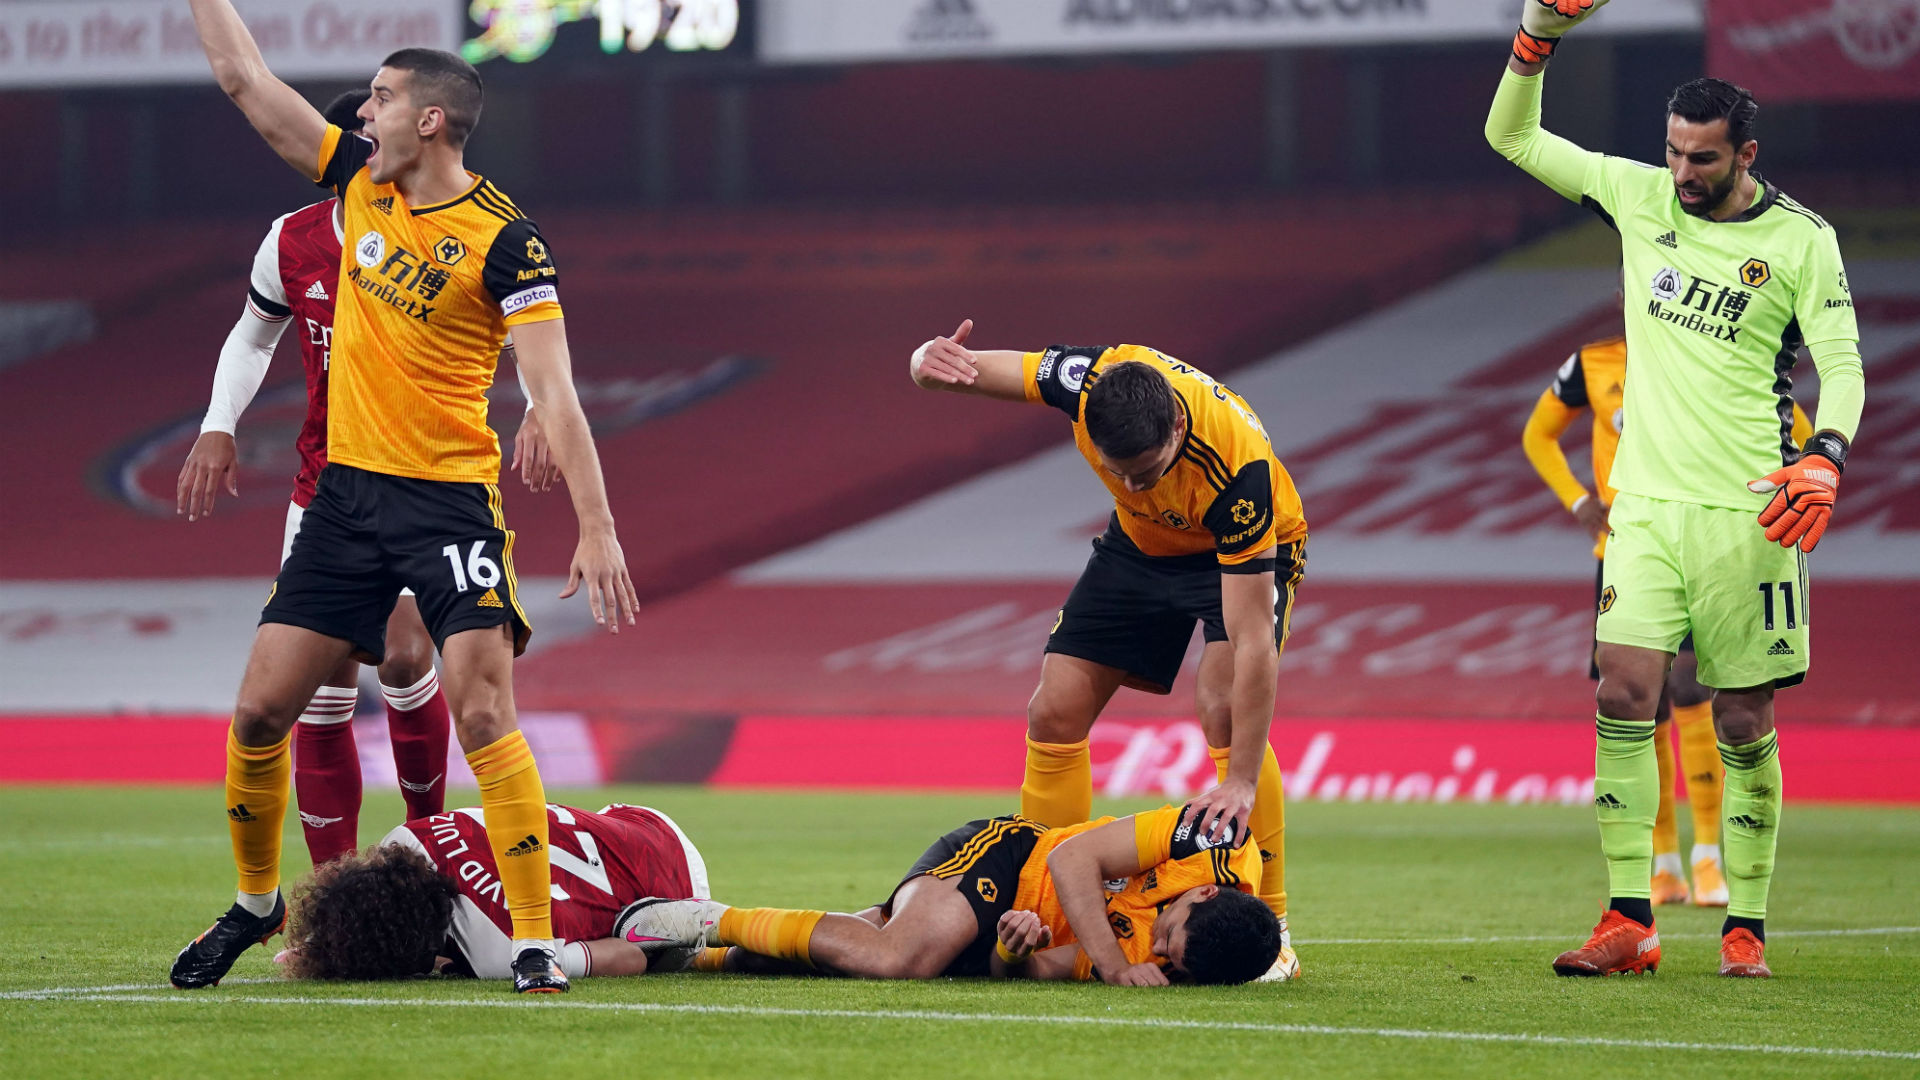 Wolves striker Jimenez conscious in hospital after head injury